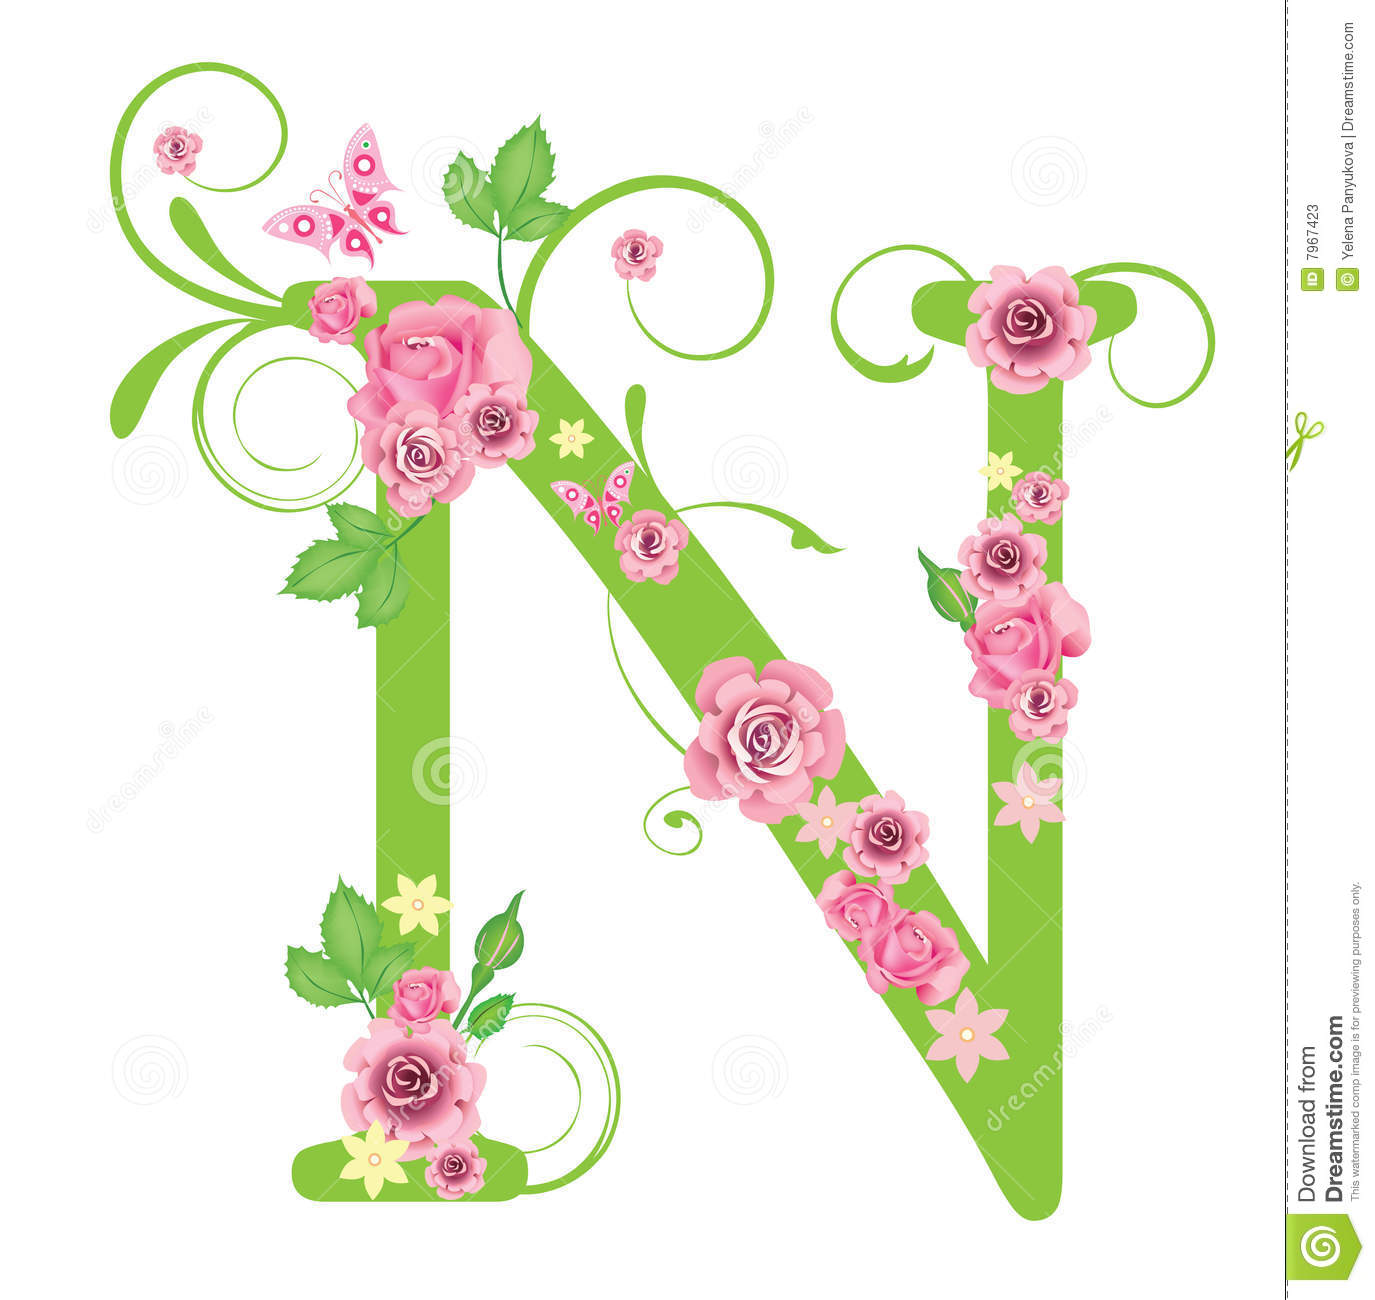 Letter N with roses stock vector. Illustration of retro - 7967423